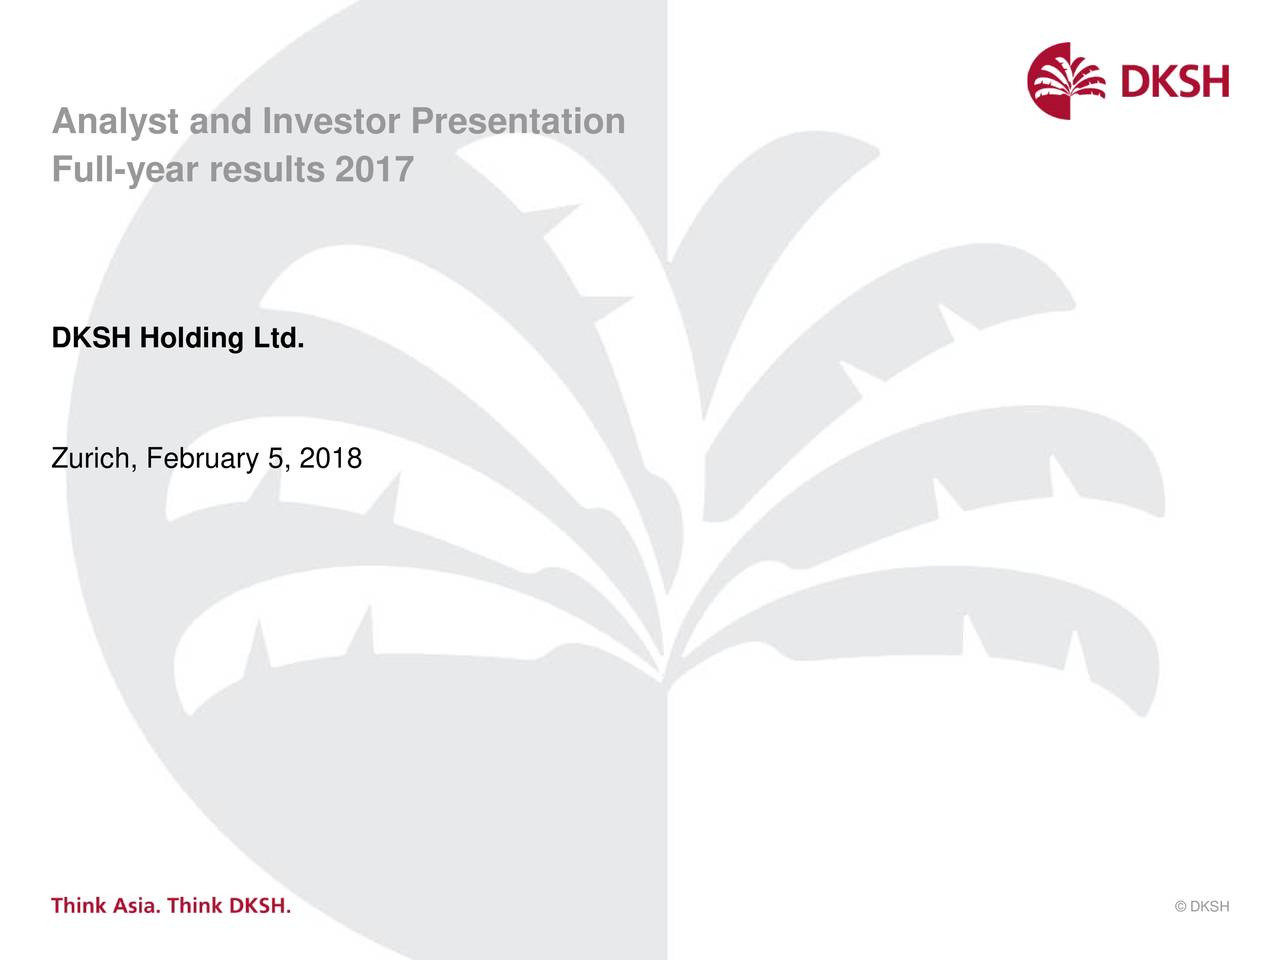 Full-year results 2017 DKSH Holding Ltd. Zurich, February 5, 2018 Page 1©DKSH